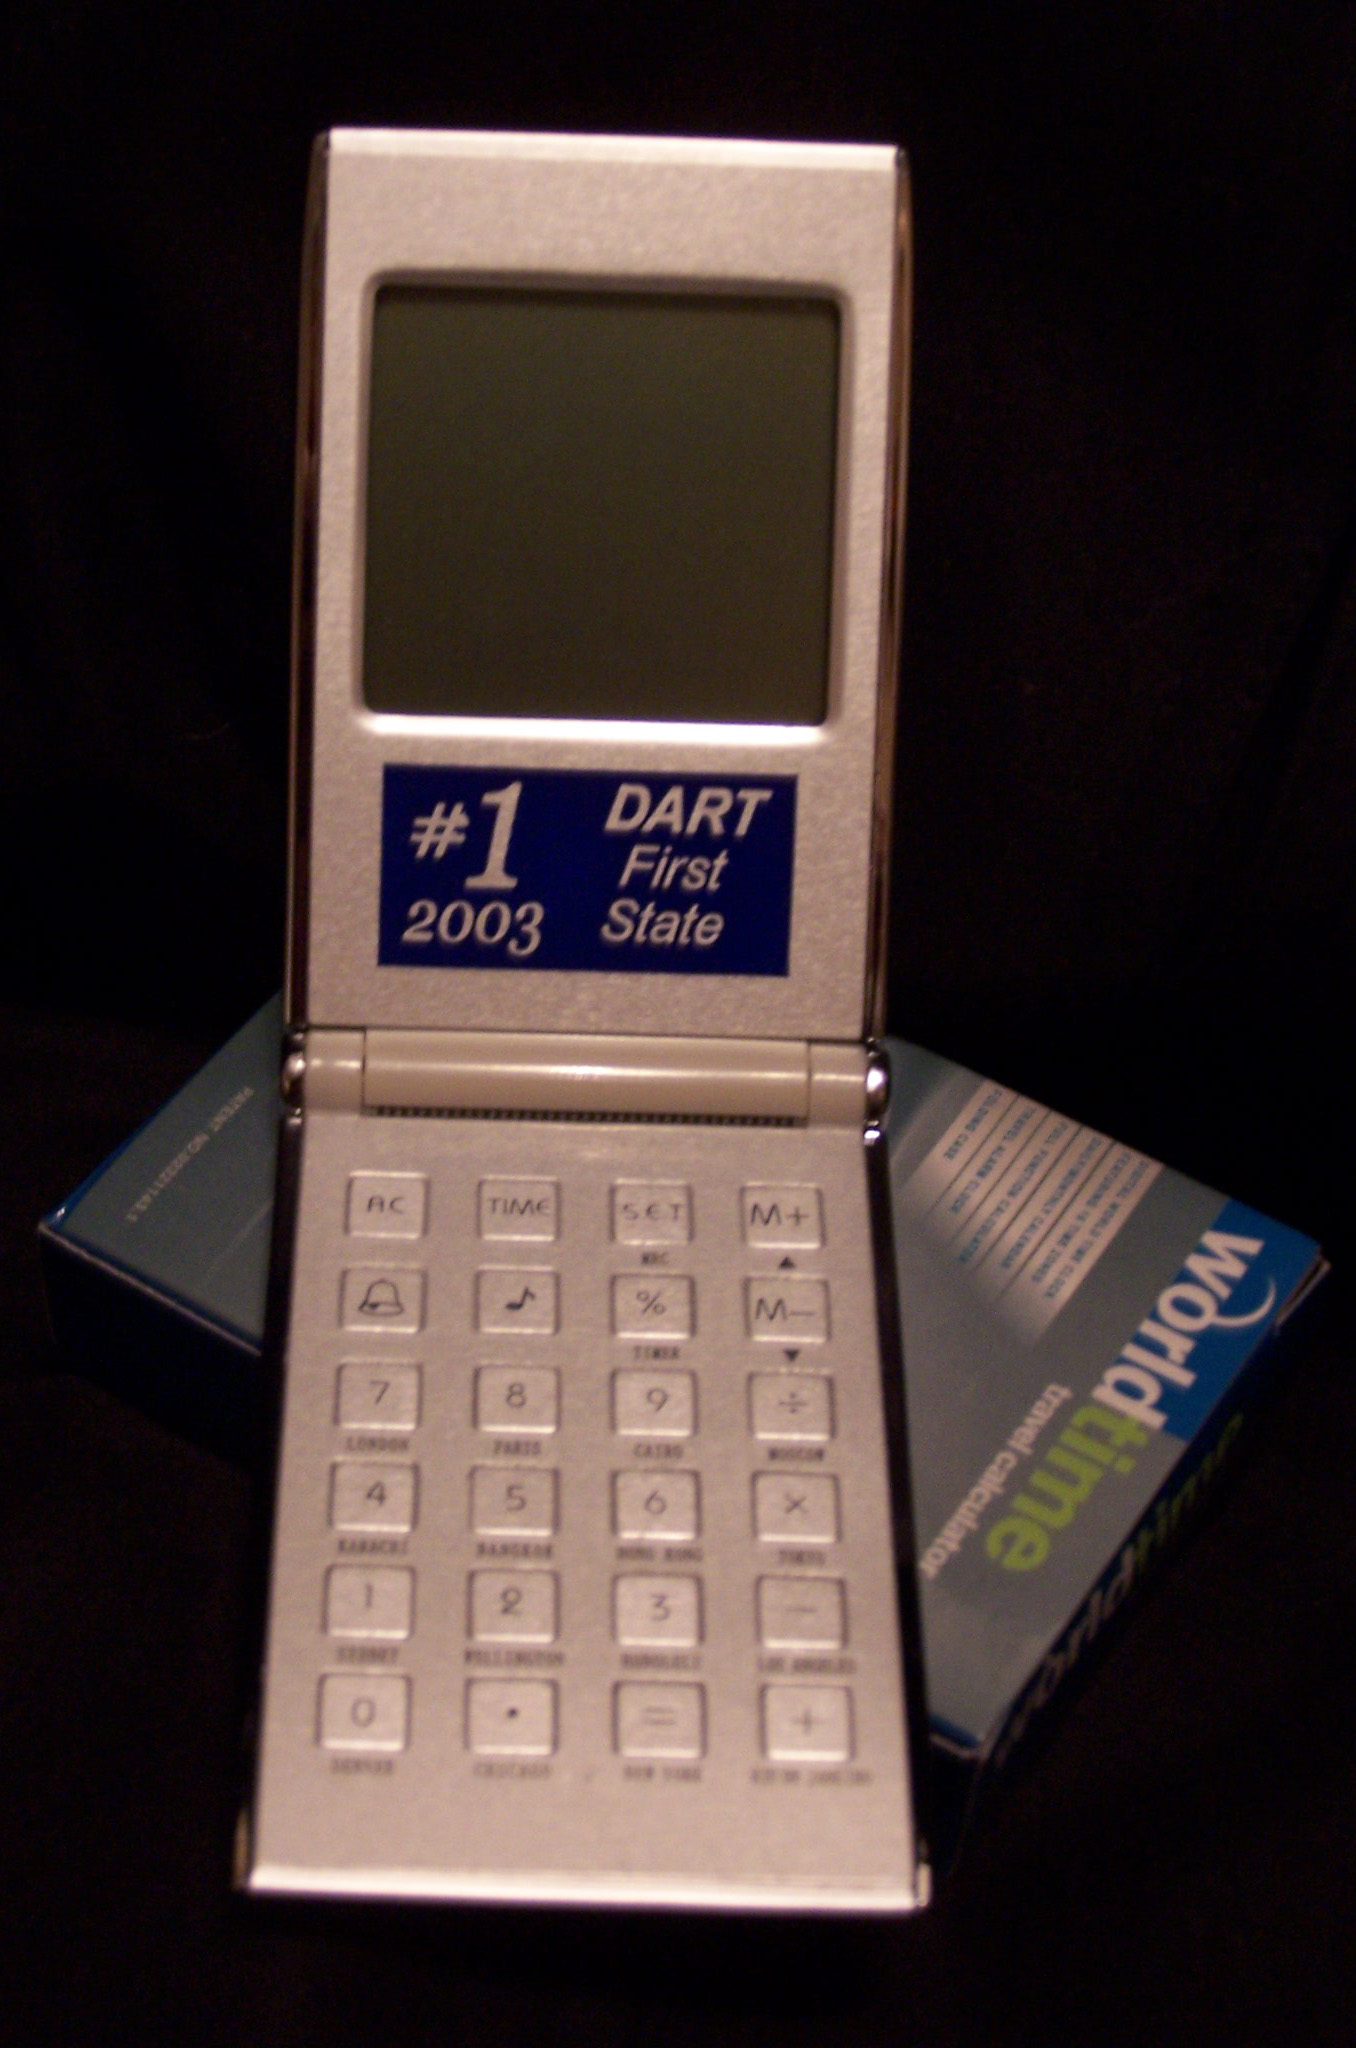 DART World Time Clock/Calculator